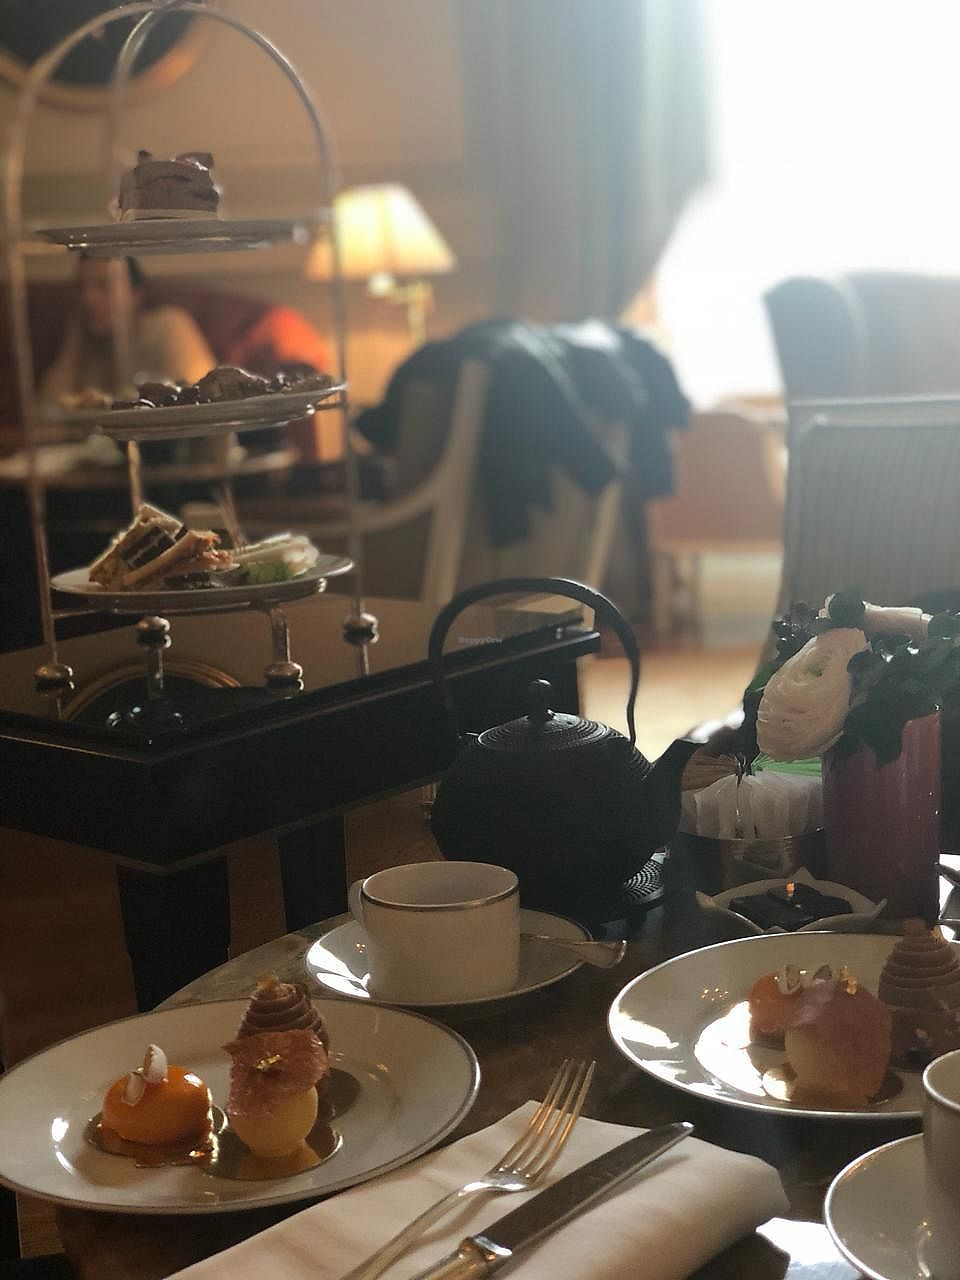 """Photo of Shangri-La Hotel - lounge  by <a href=""""/members/profile/fievos"""">fievos</a> <br/>The vegan afternoon tea at the Shangri La <br/> April 4, 2018  - <a href='/contact/abuse/image/64090/380826'>Report</a>"""